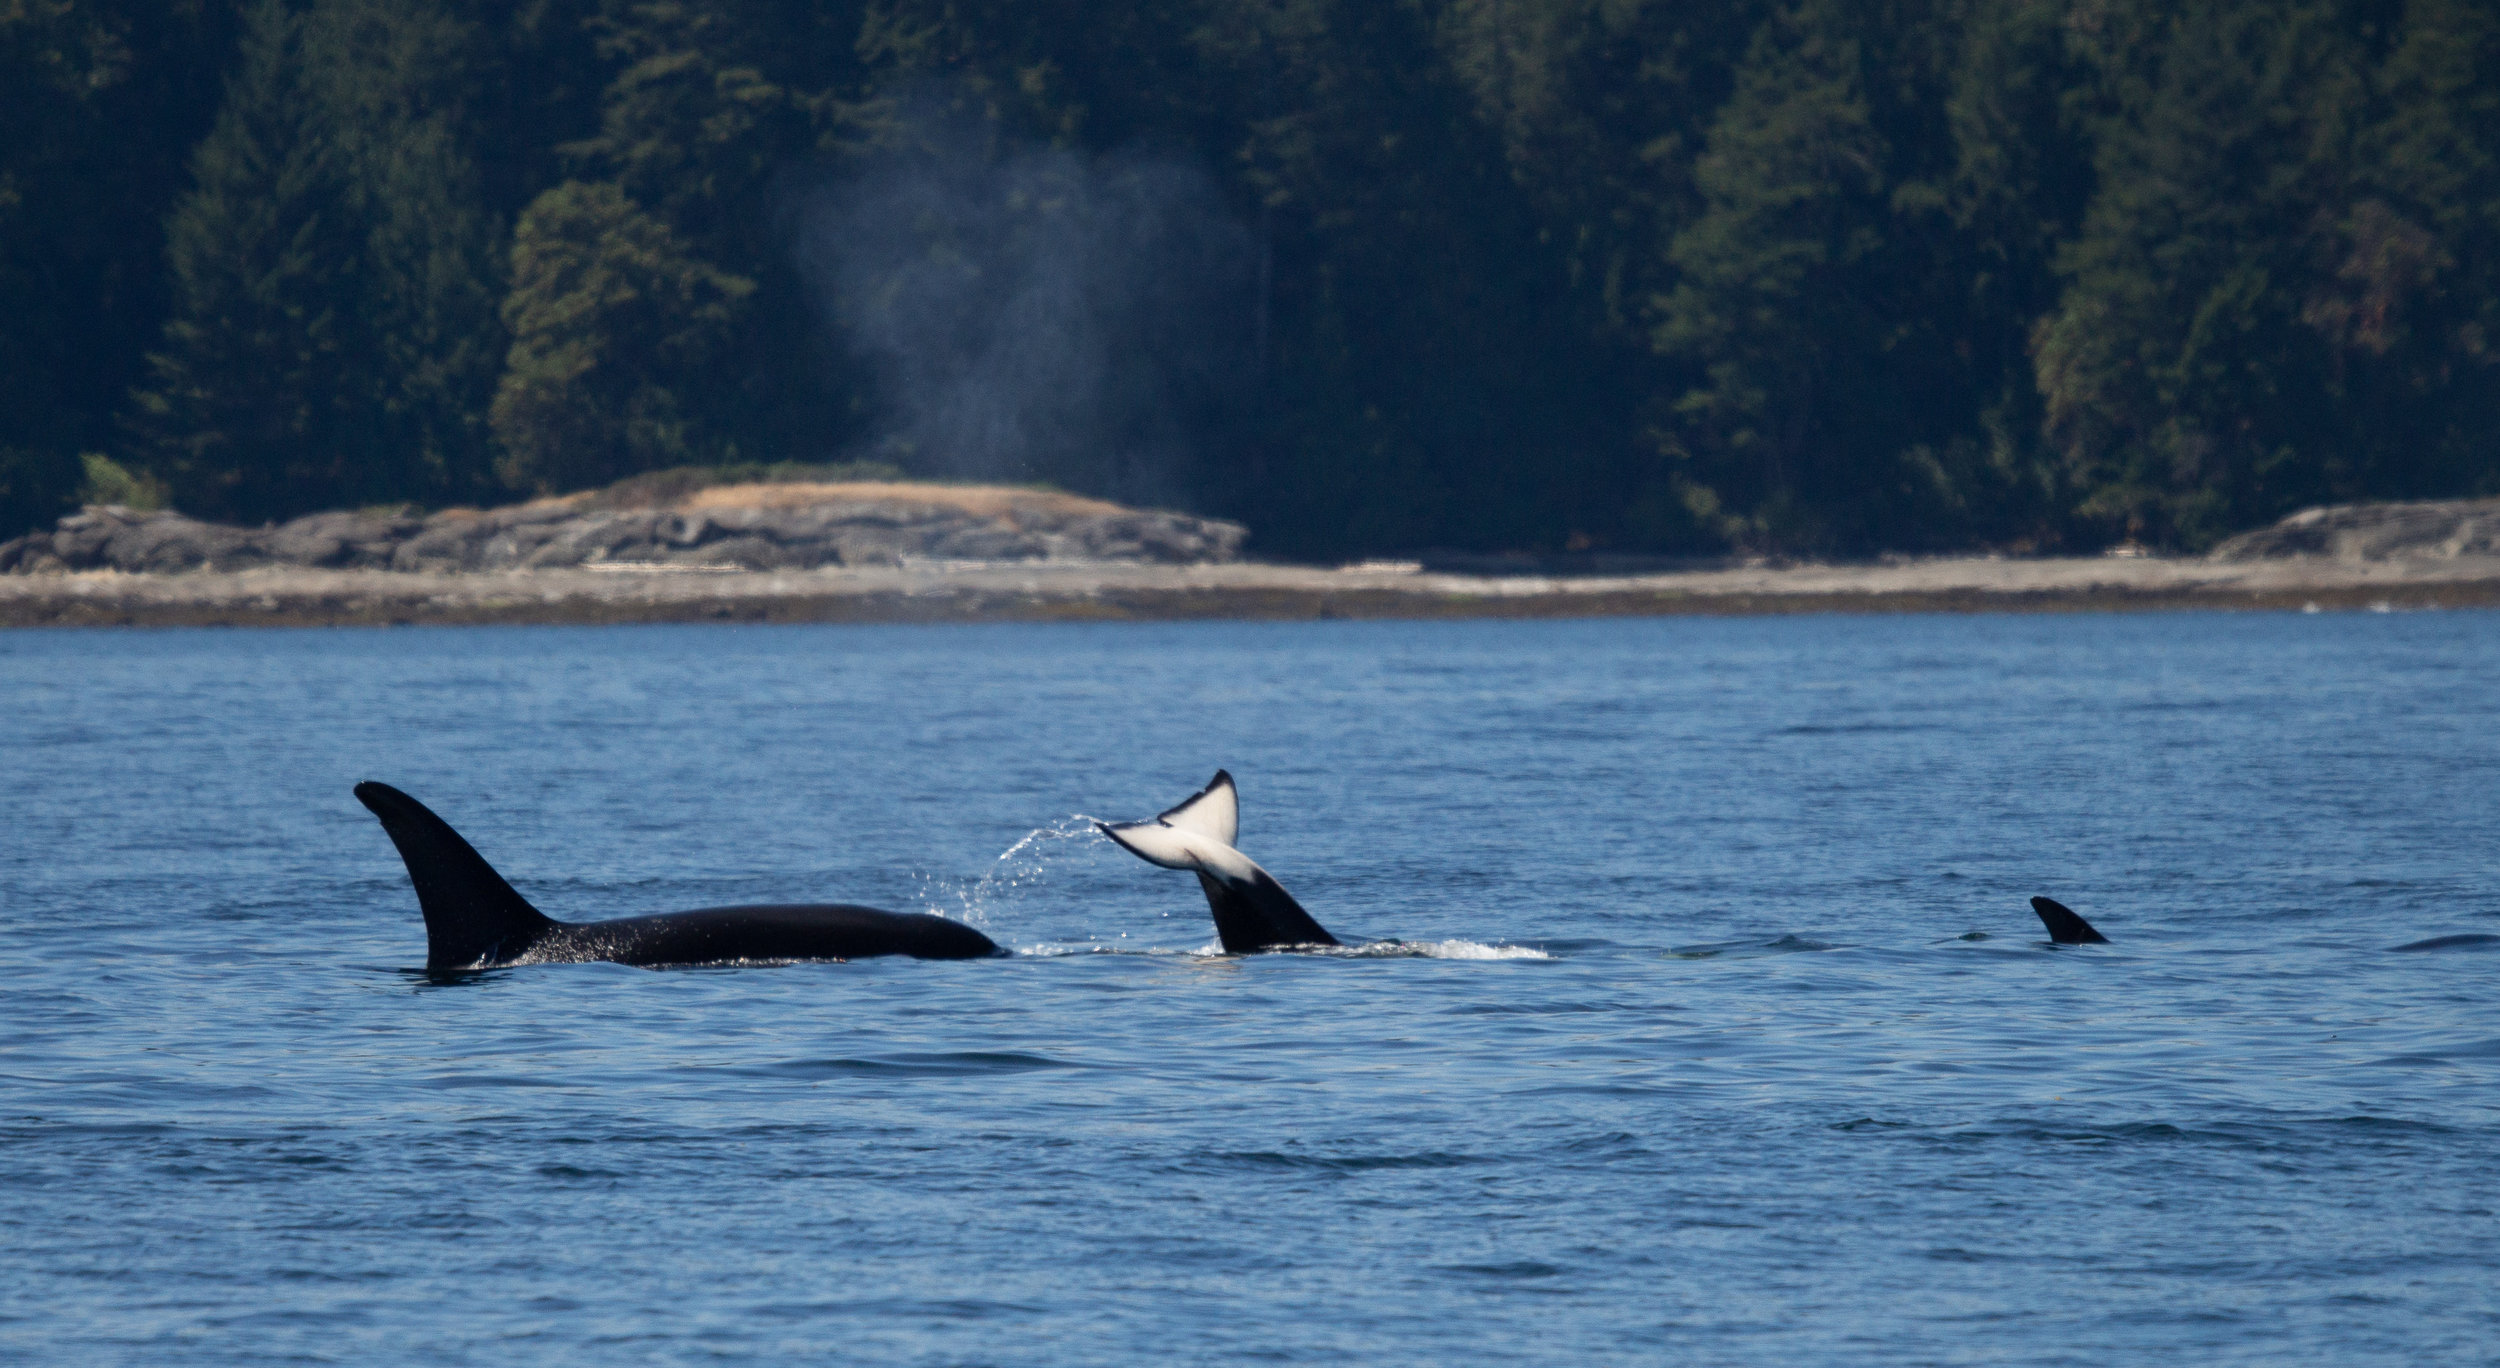 A little fluke wave in between some travelling killer whales! Photo by Natalie Reichenbacher